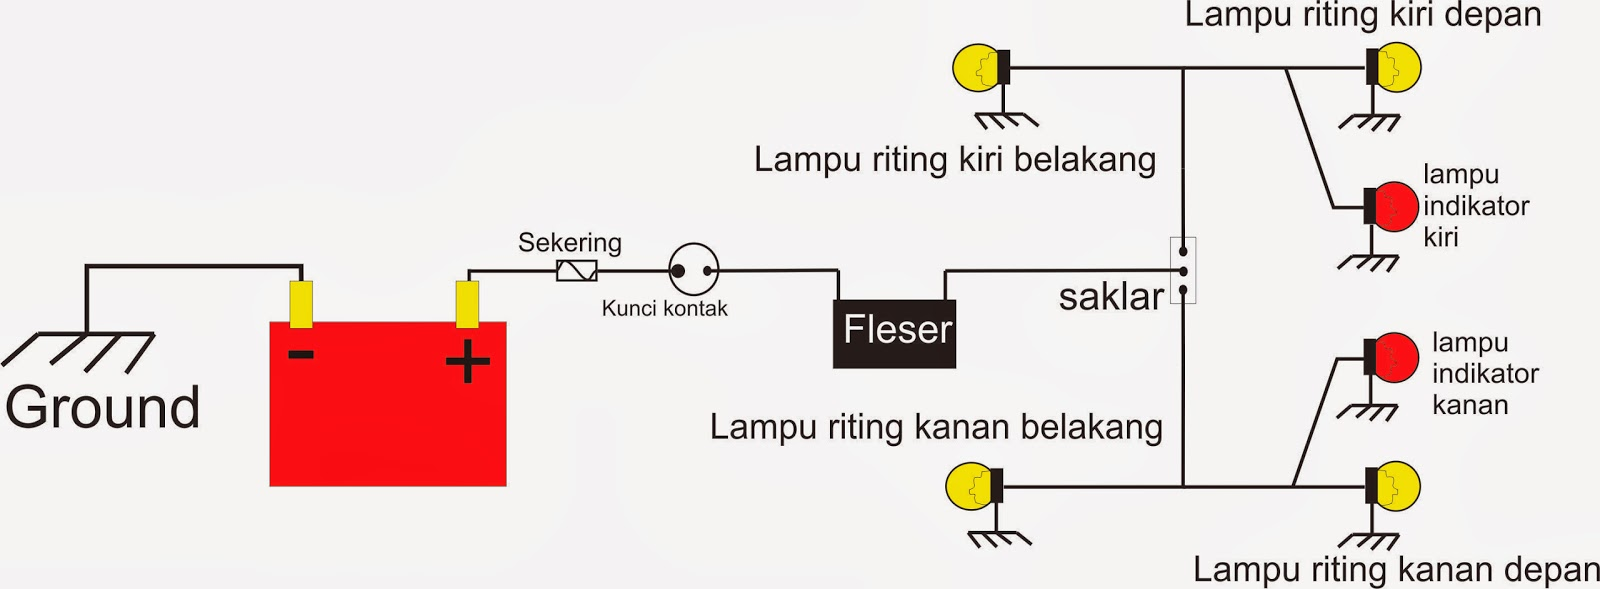 Diagram Wiring Diagram Lampu Riting Full Version Hd Quality Lampu Riting Electrocardiagram Belleilmersion Fr